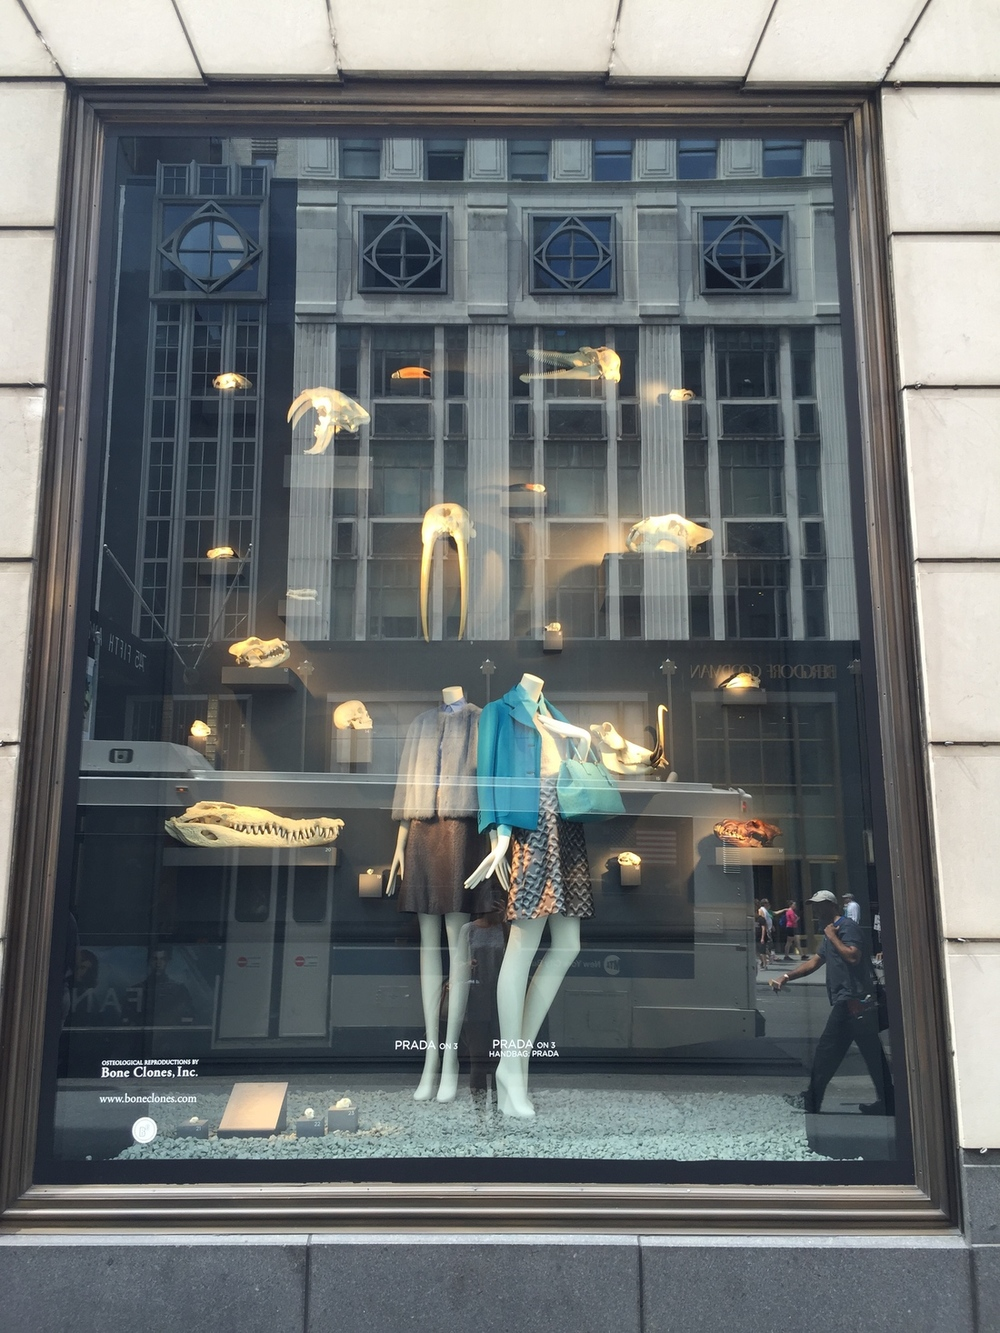 bergdorf's visual merchandising